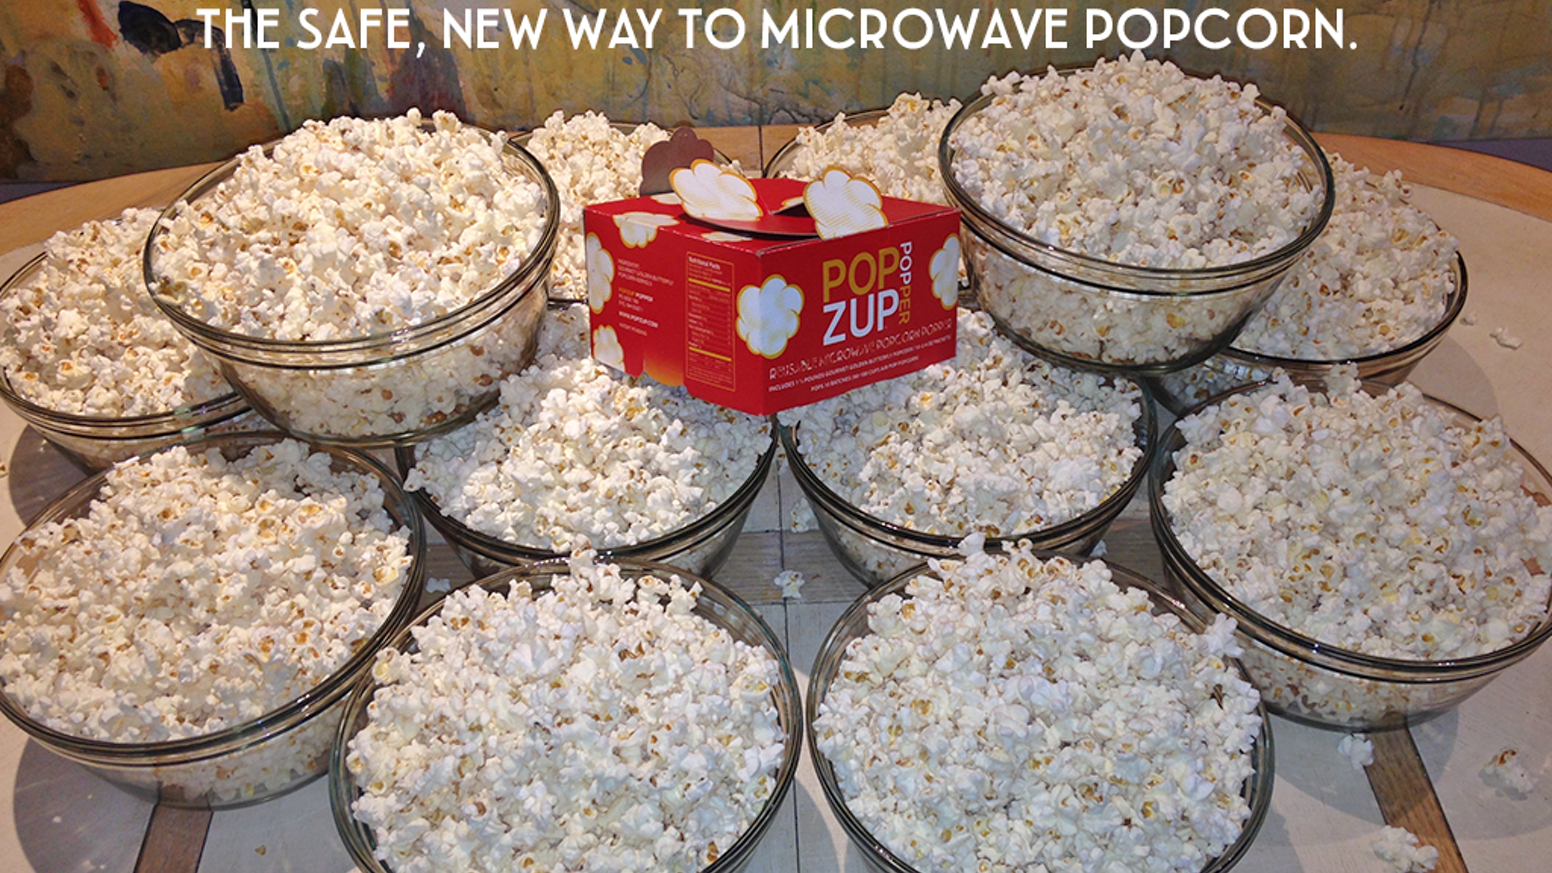 The chemical free, totally new way to microwave air popped popcorn that's naturally healthy and delicious.